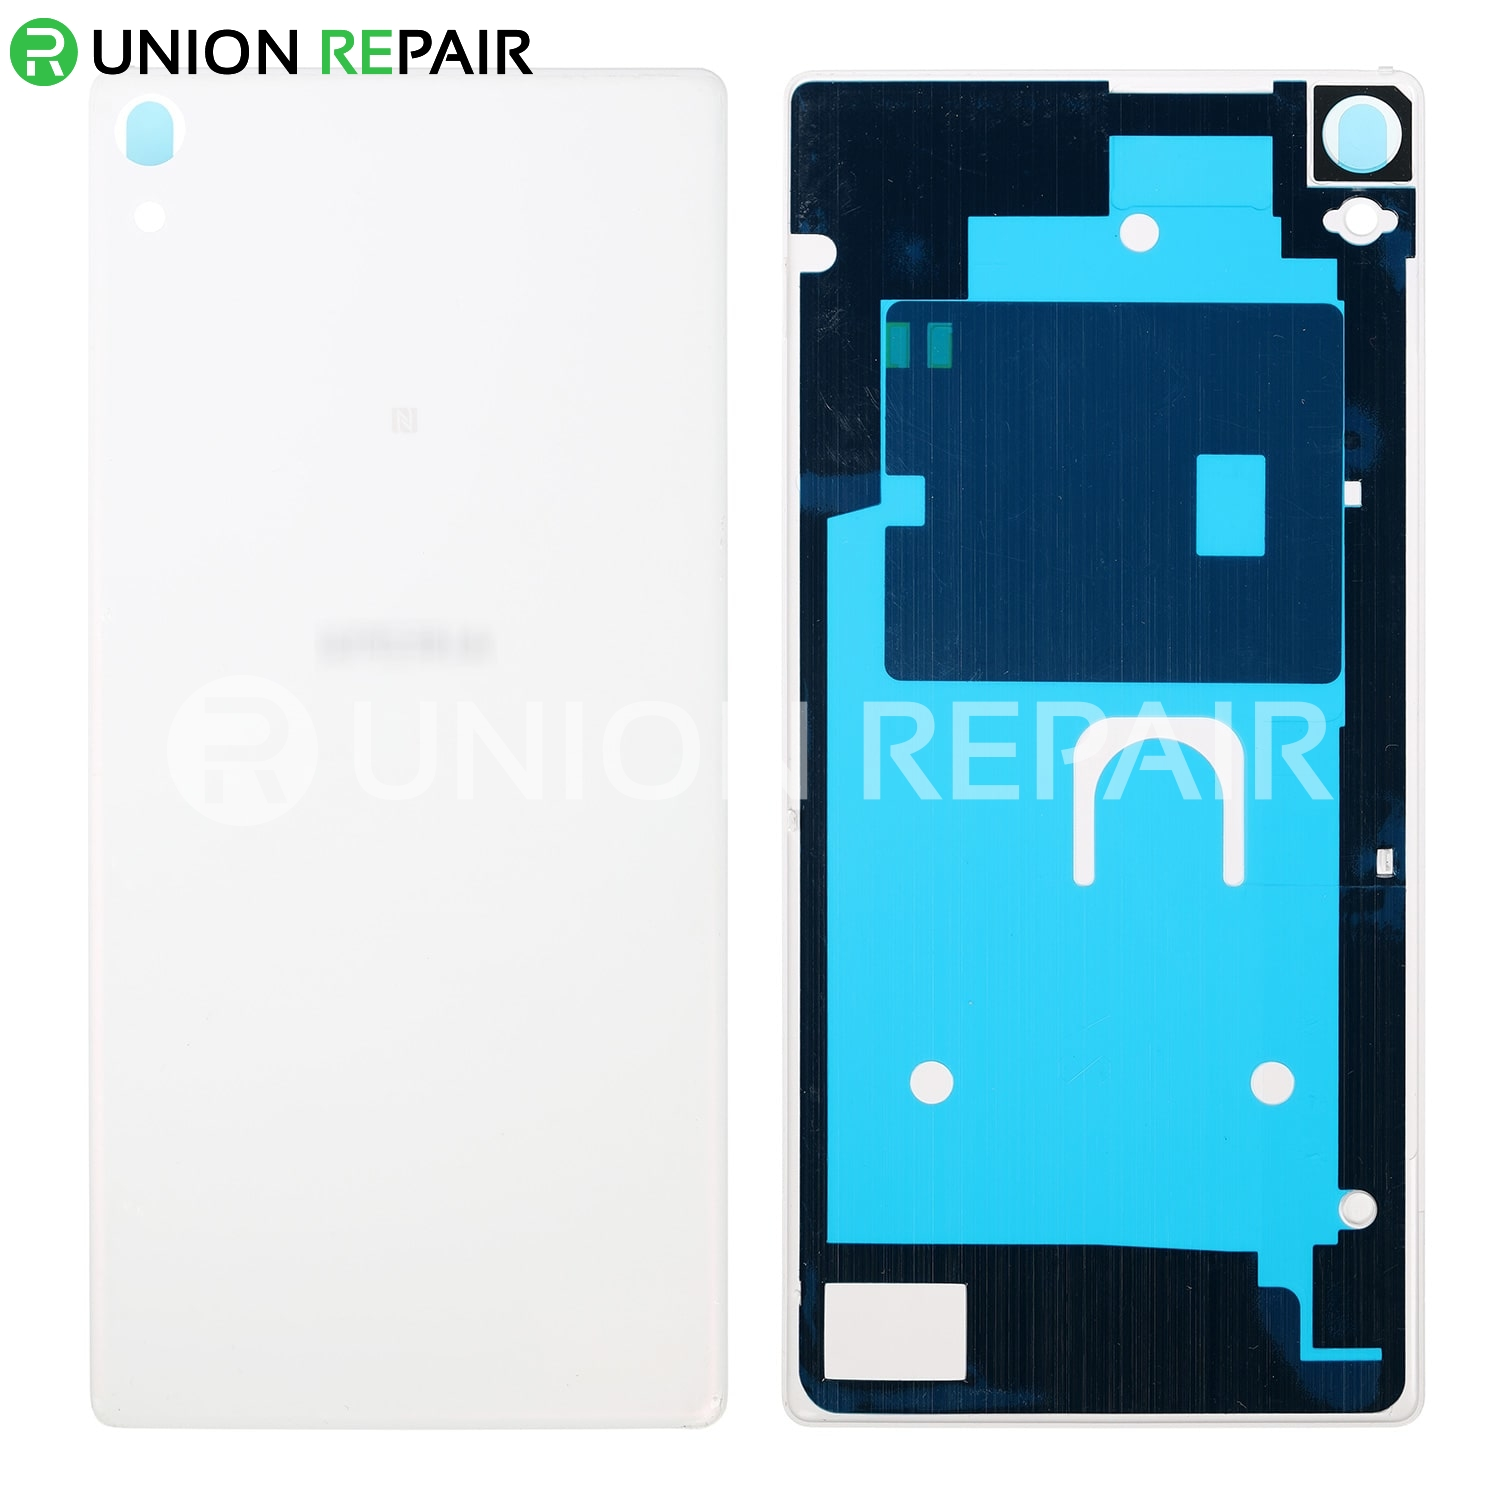 Replacement for Sony Xperia XA Ultra Battery Door - White